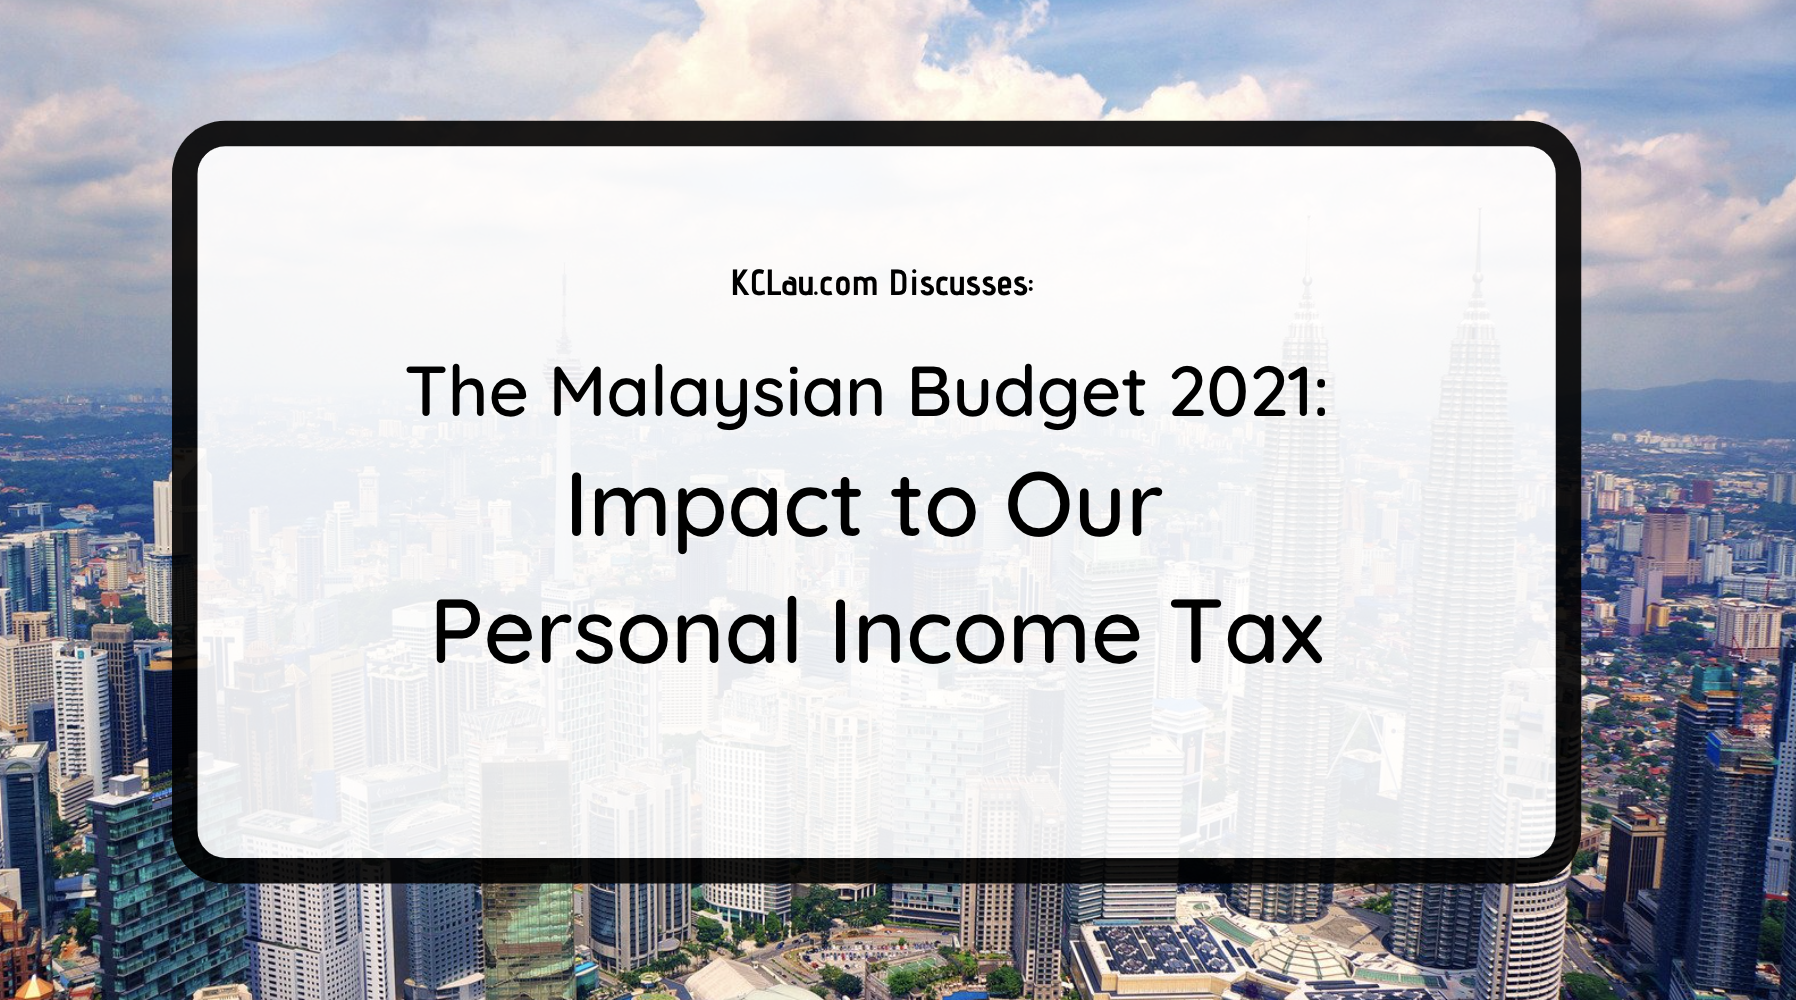 The Malaysian Budget 2021: Impact to Our Personal Income Tax